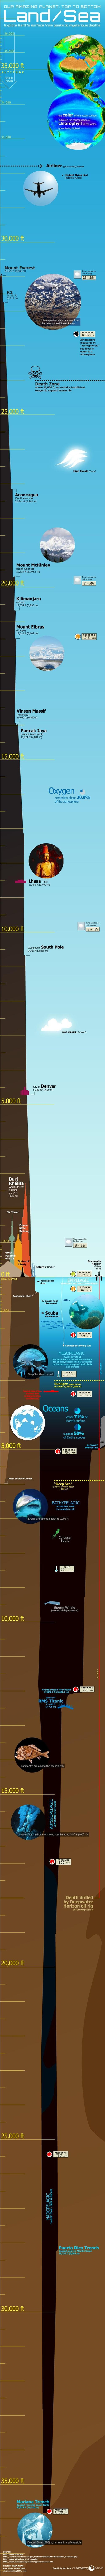 Just How Deep is the Deepwater Horizon Gusher?